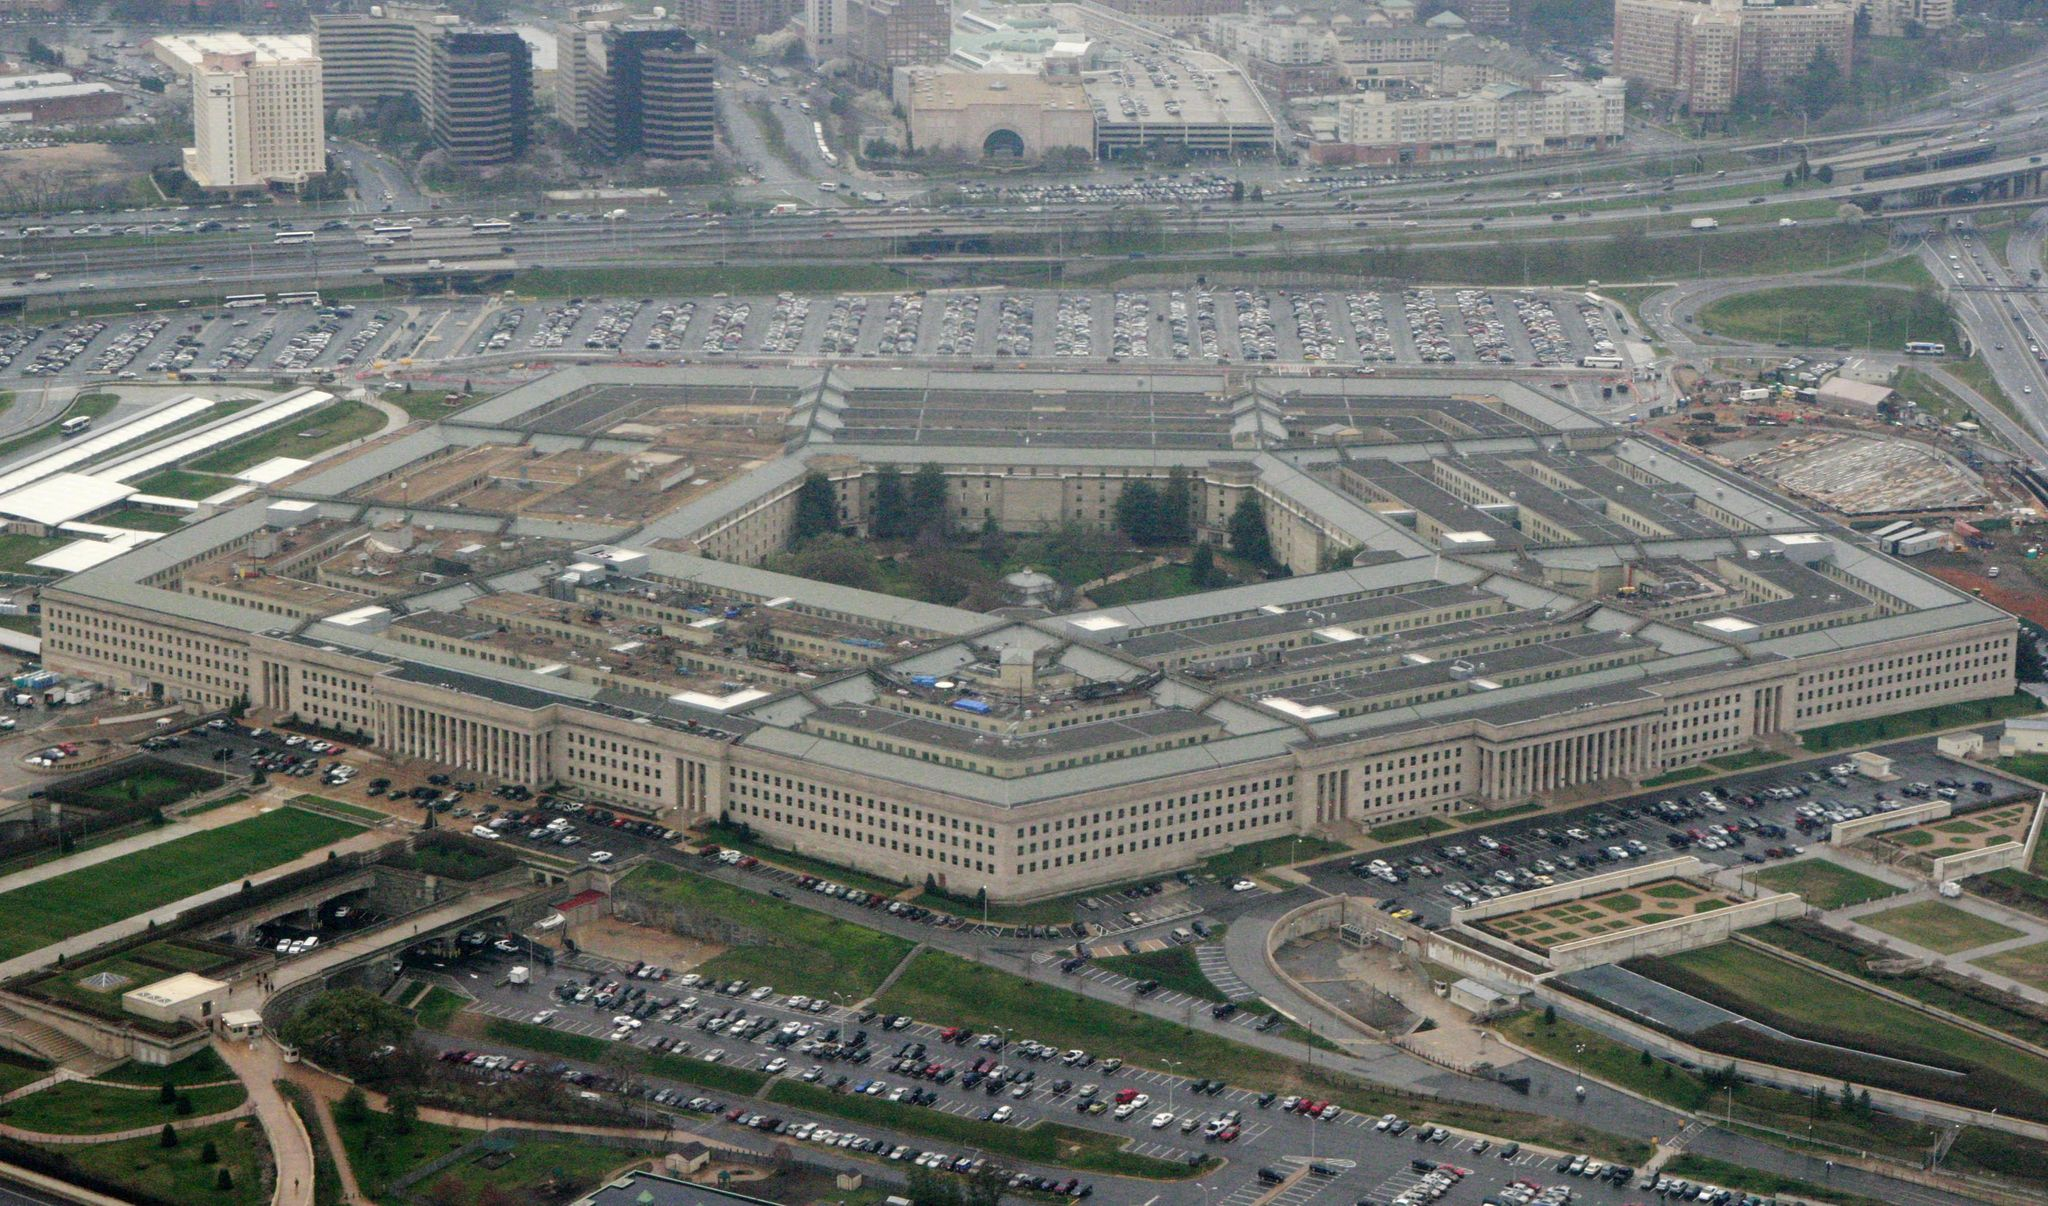 The case for rebuilding the U.S. military